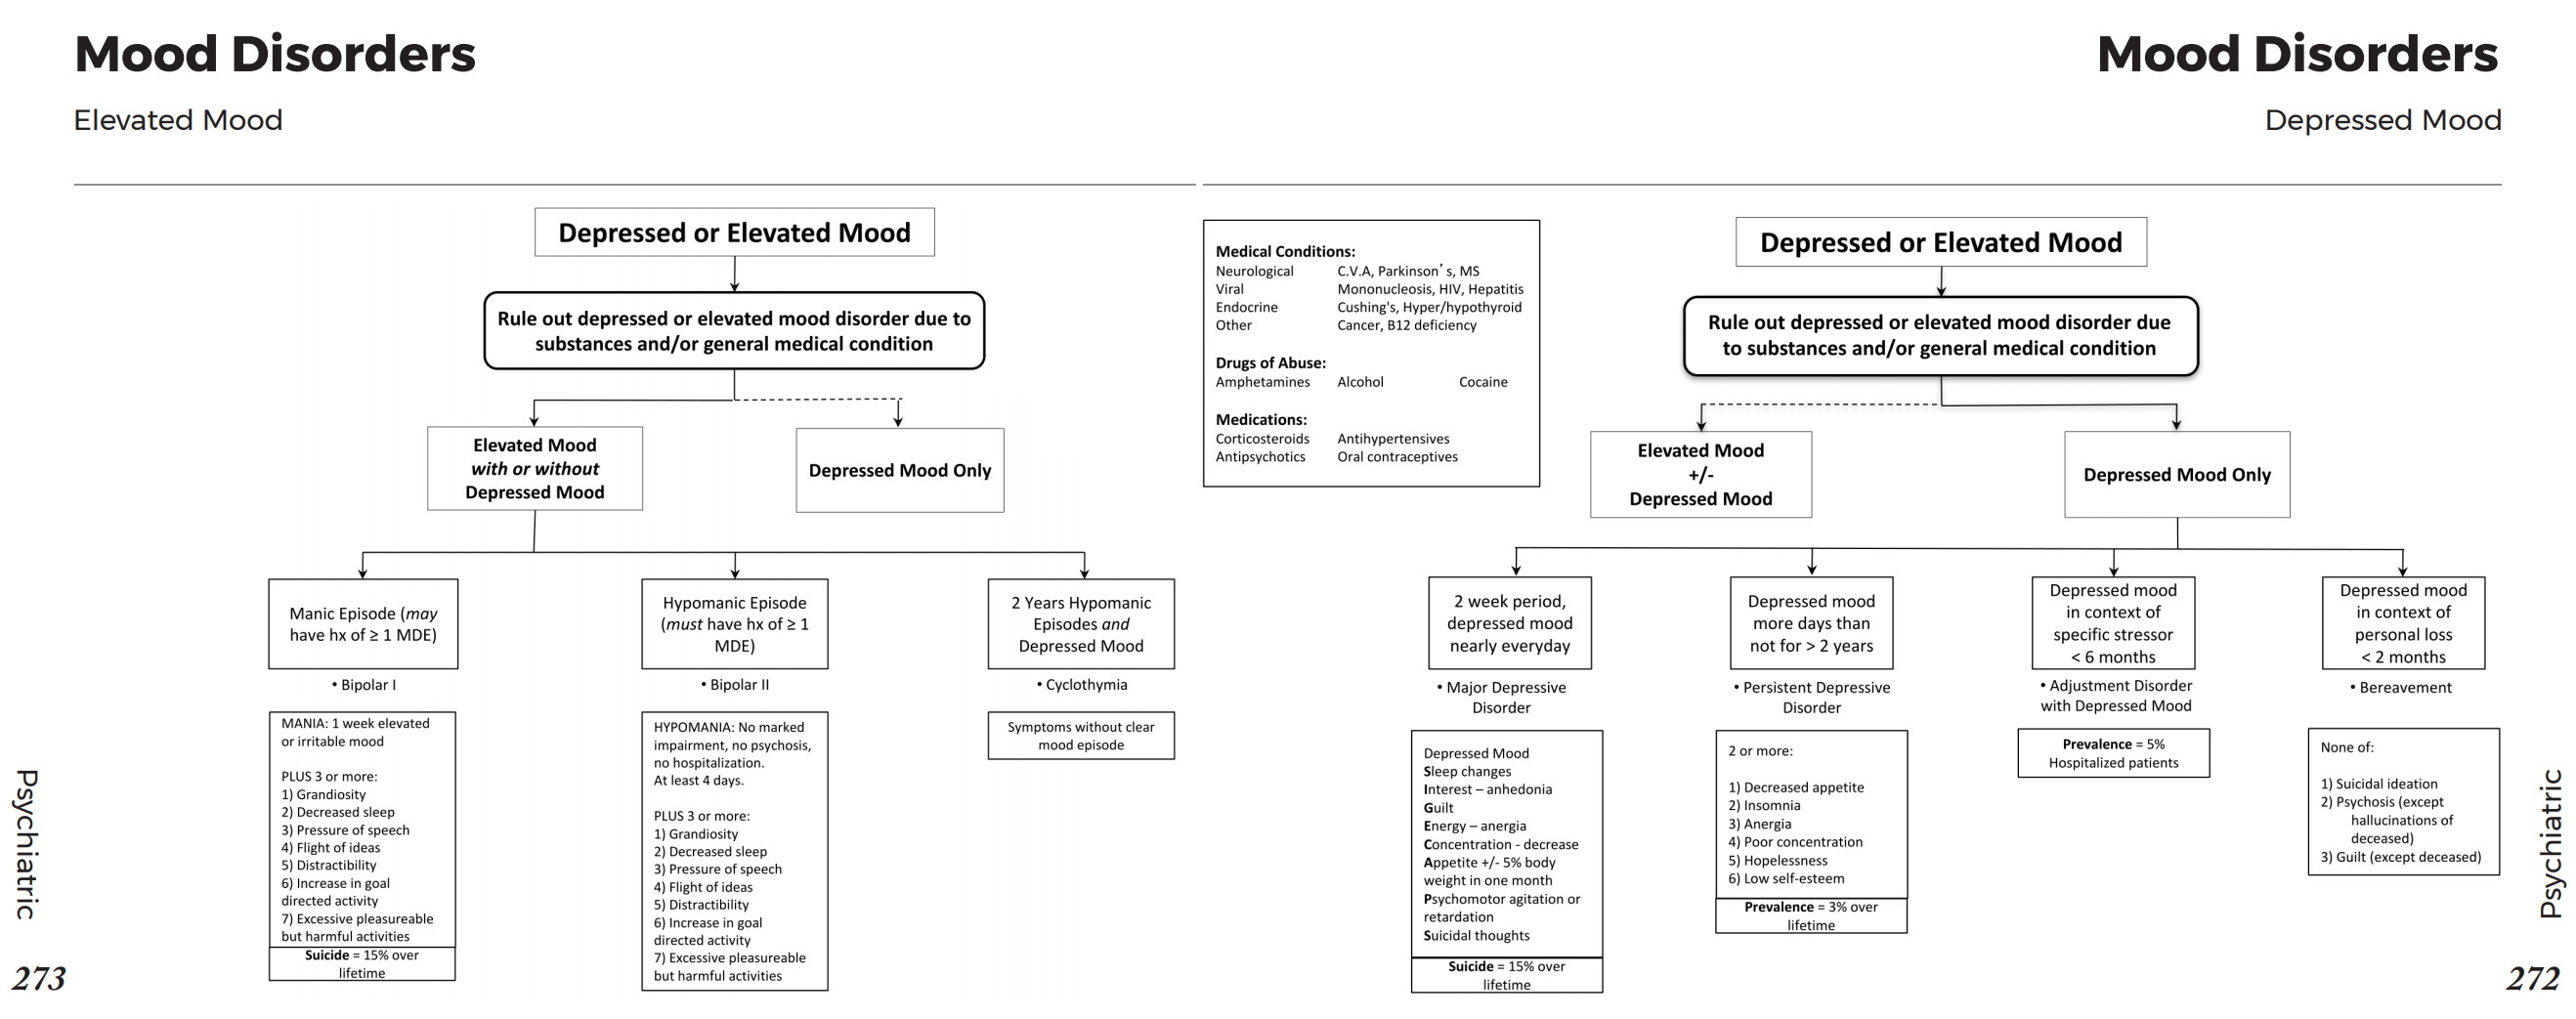 Mood Disorders Depressed Or Elevated Moods Differential Diagnosis Algorithm Major Depressive